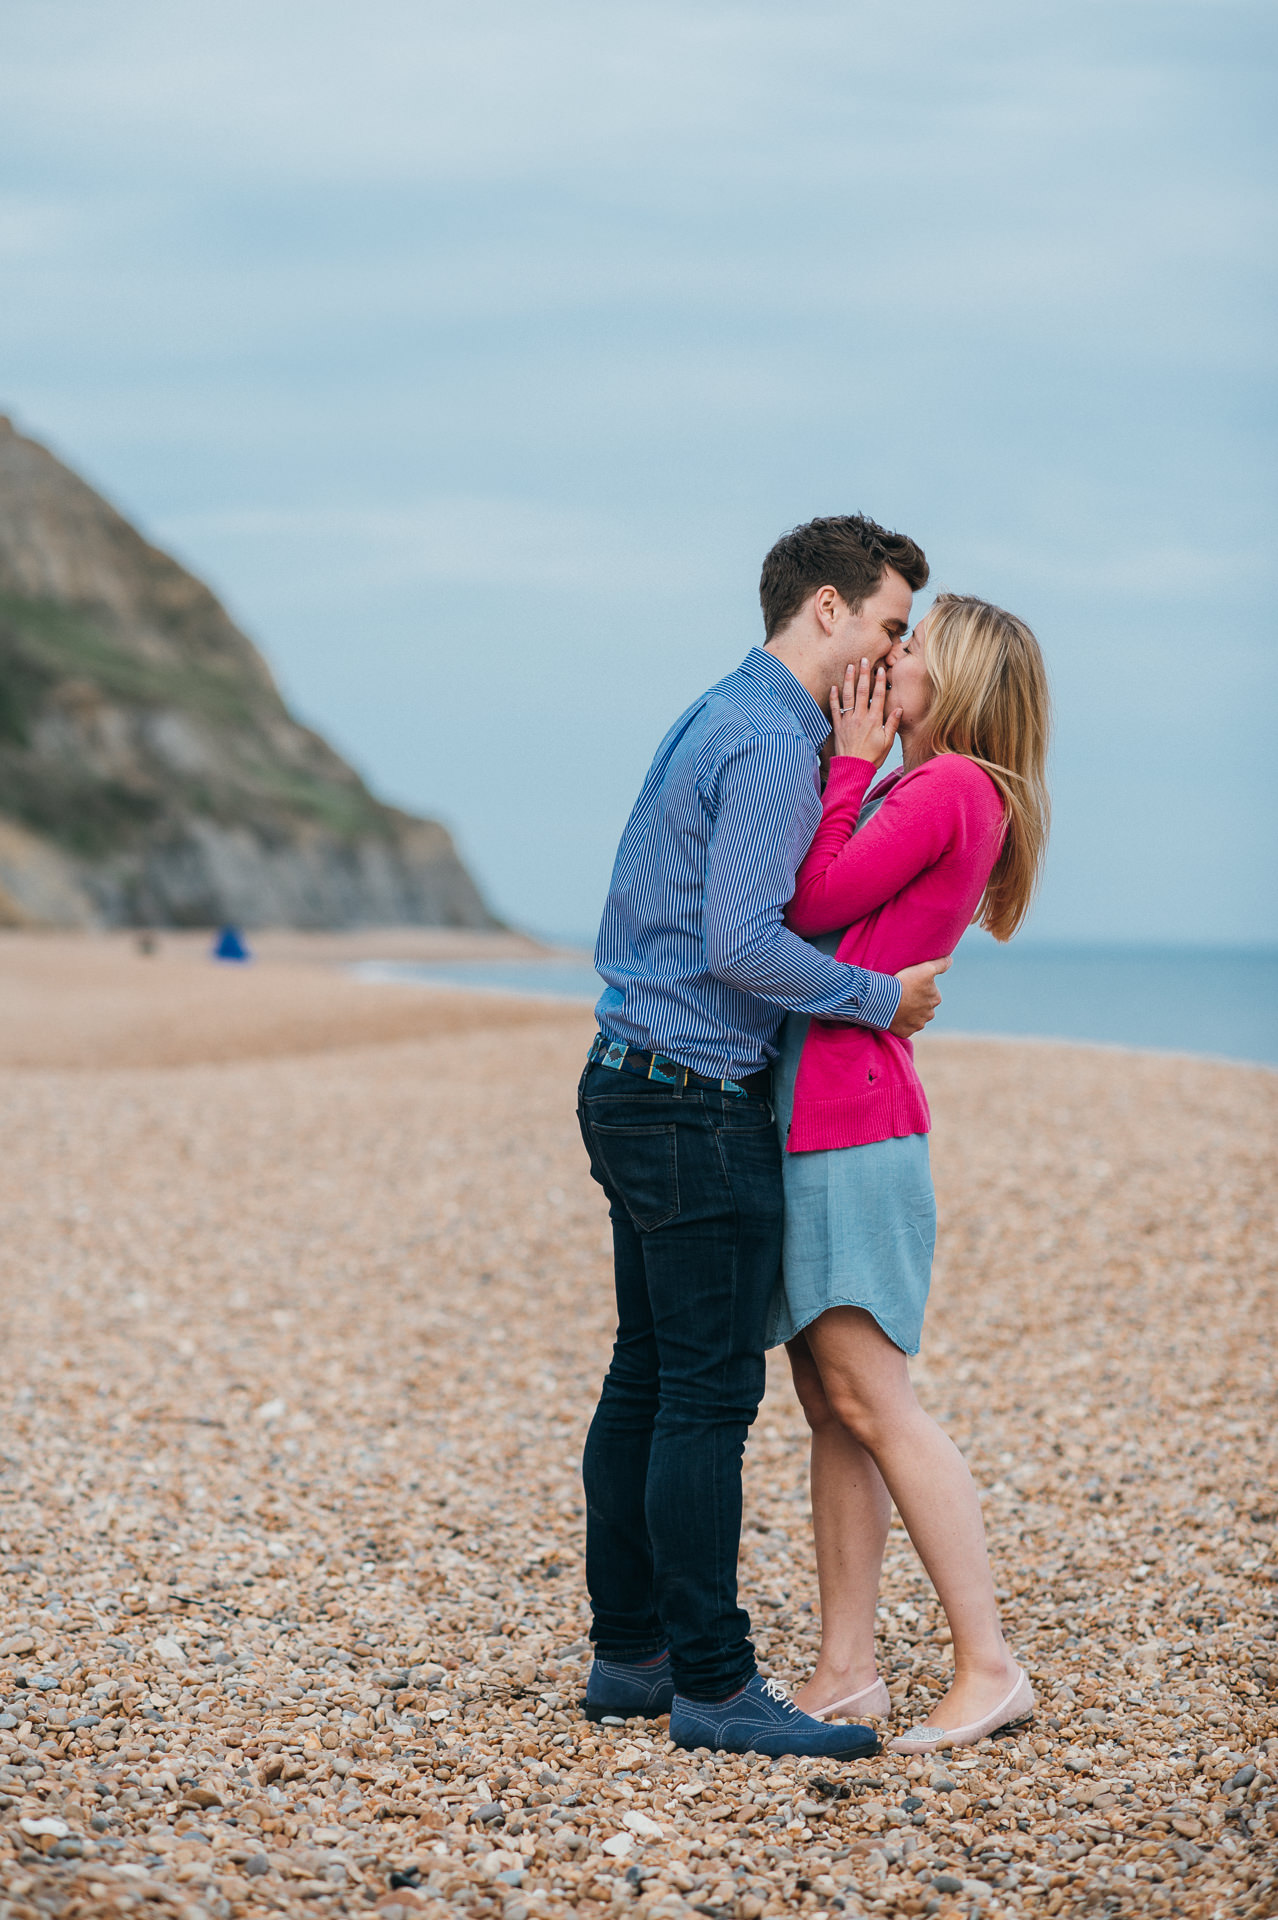 Jurassic coast portrait shoot 24